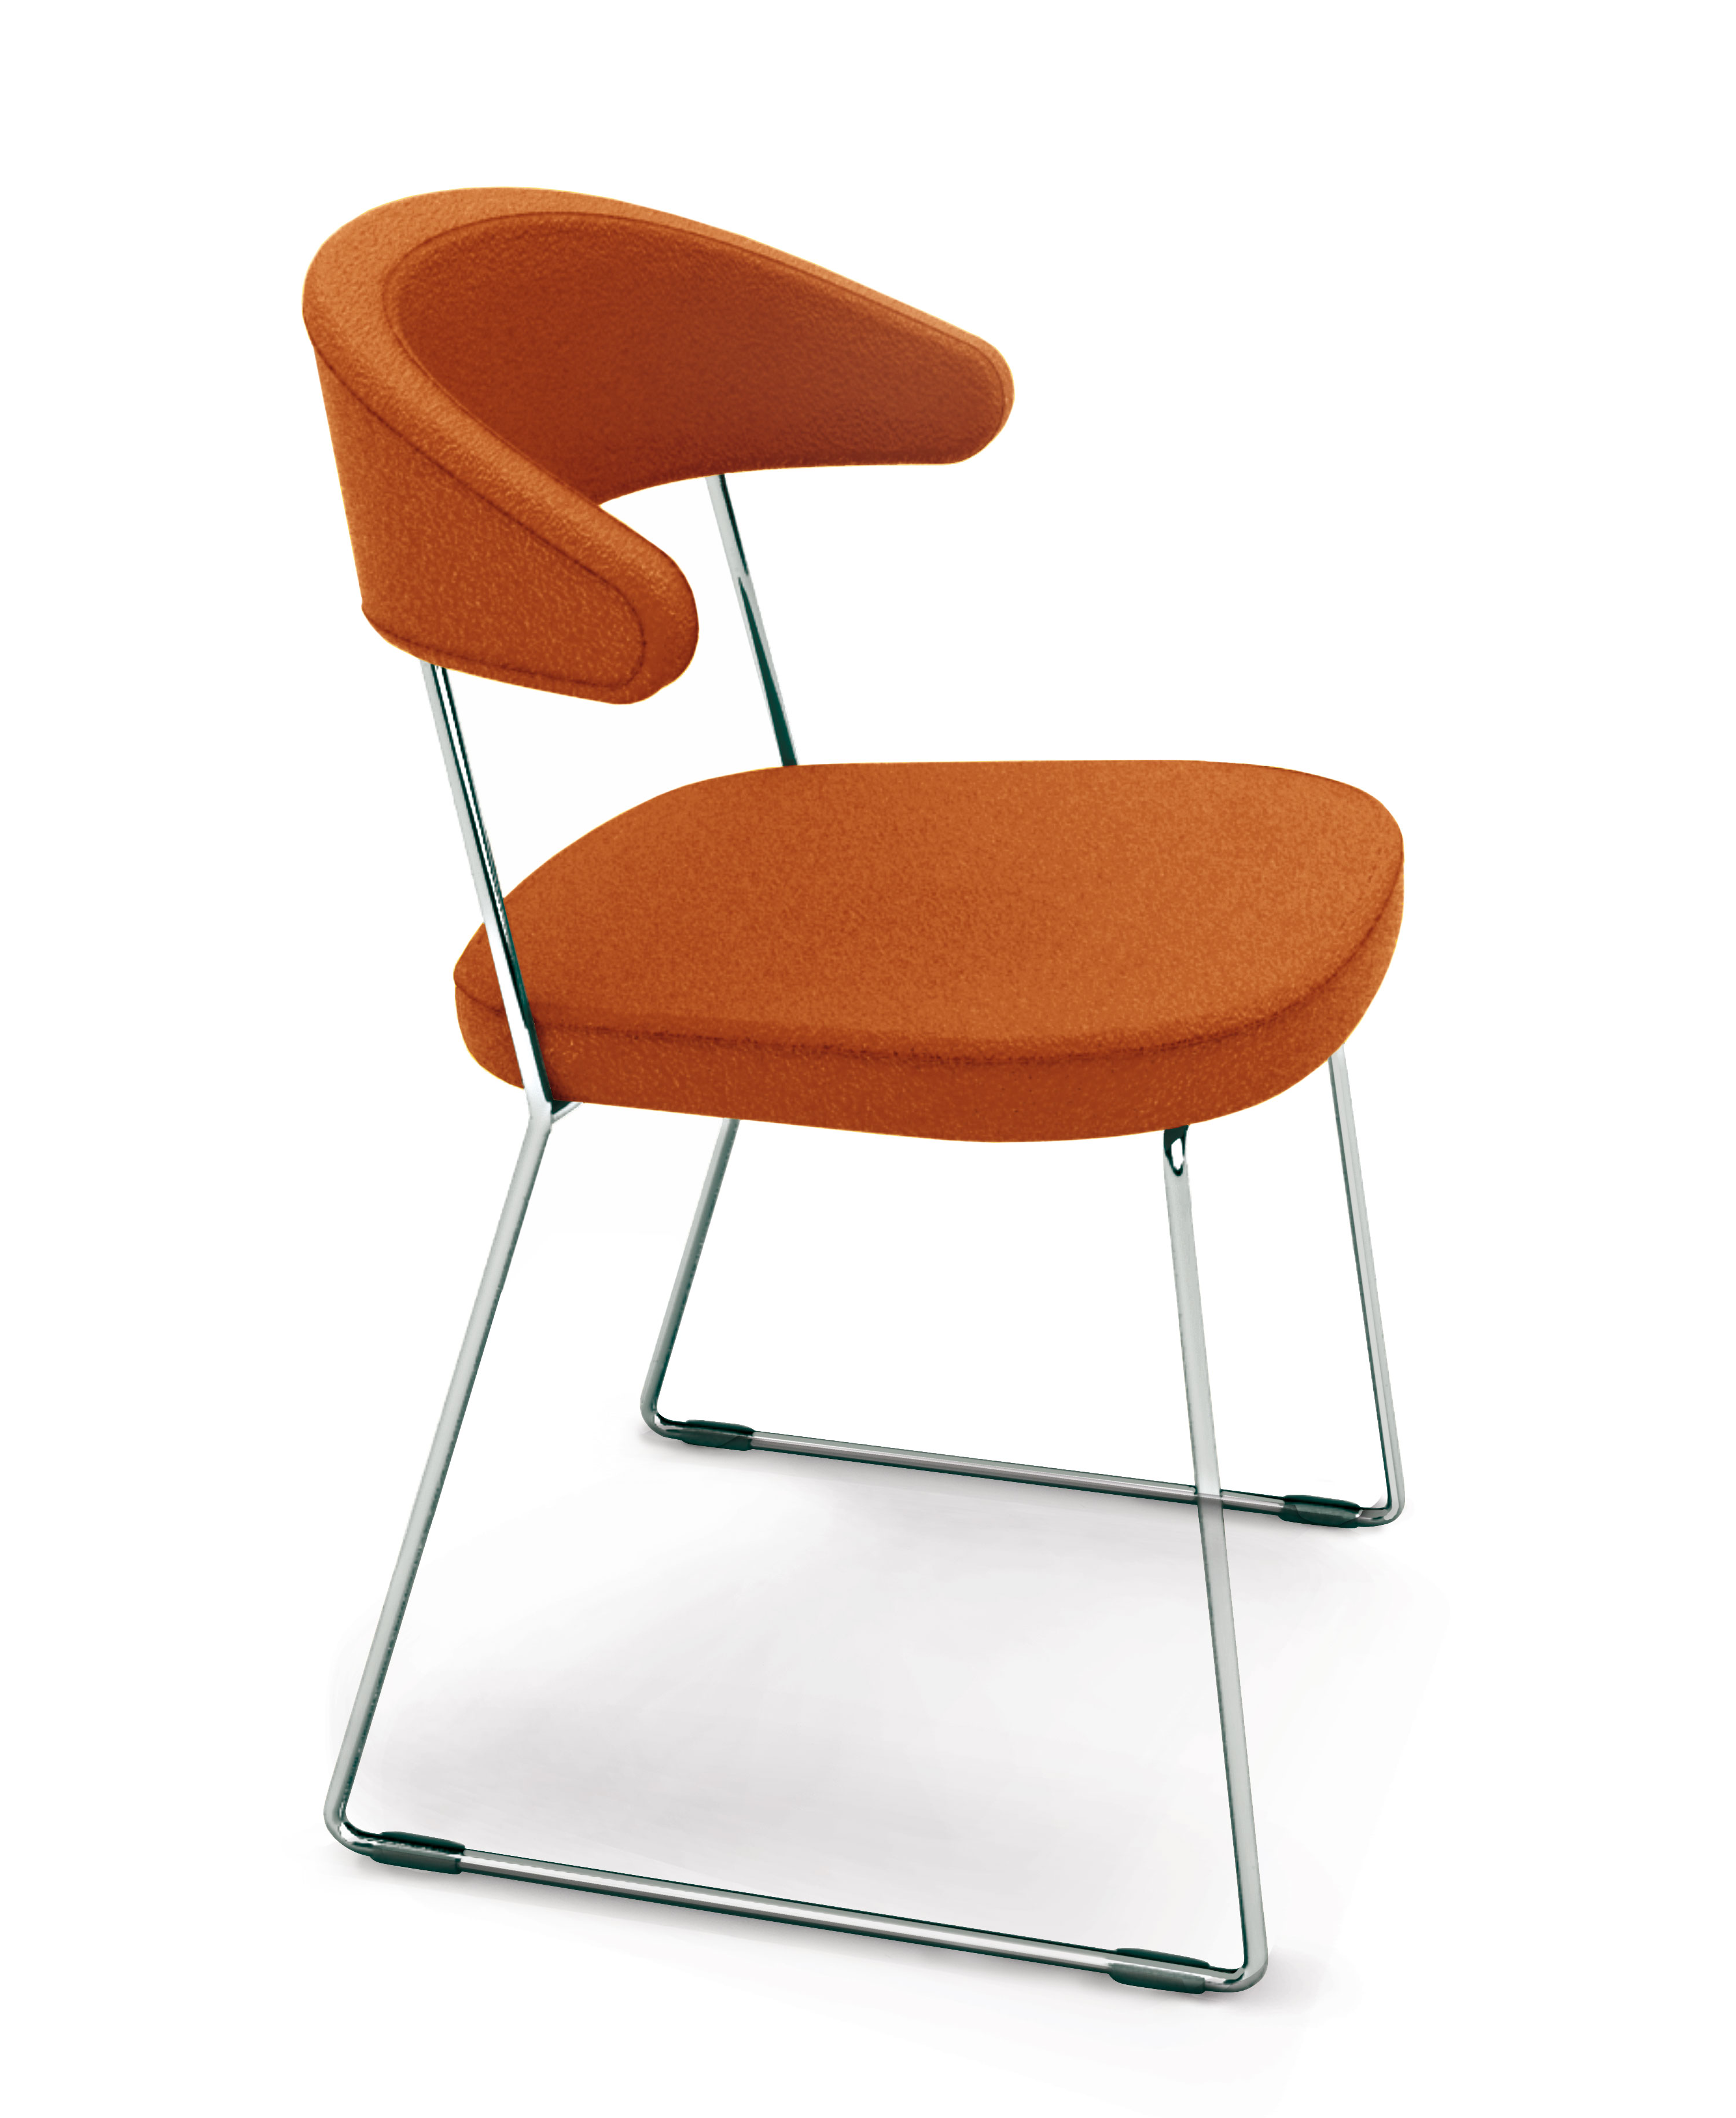 Project Meubilair Wize Office Chairs Vicenza